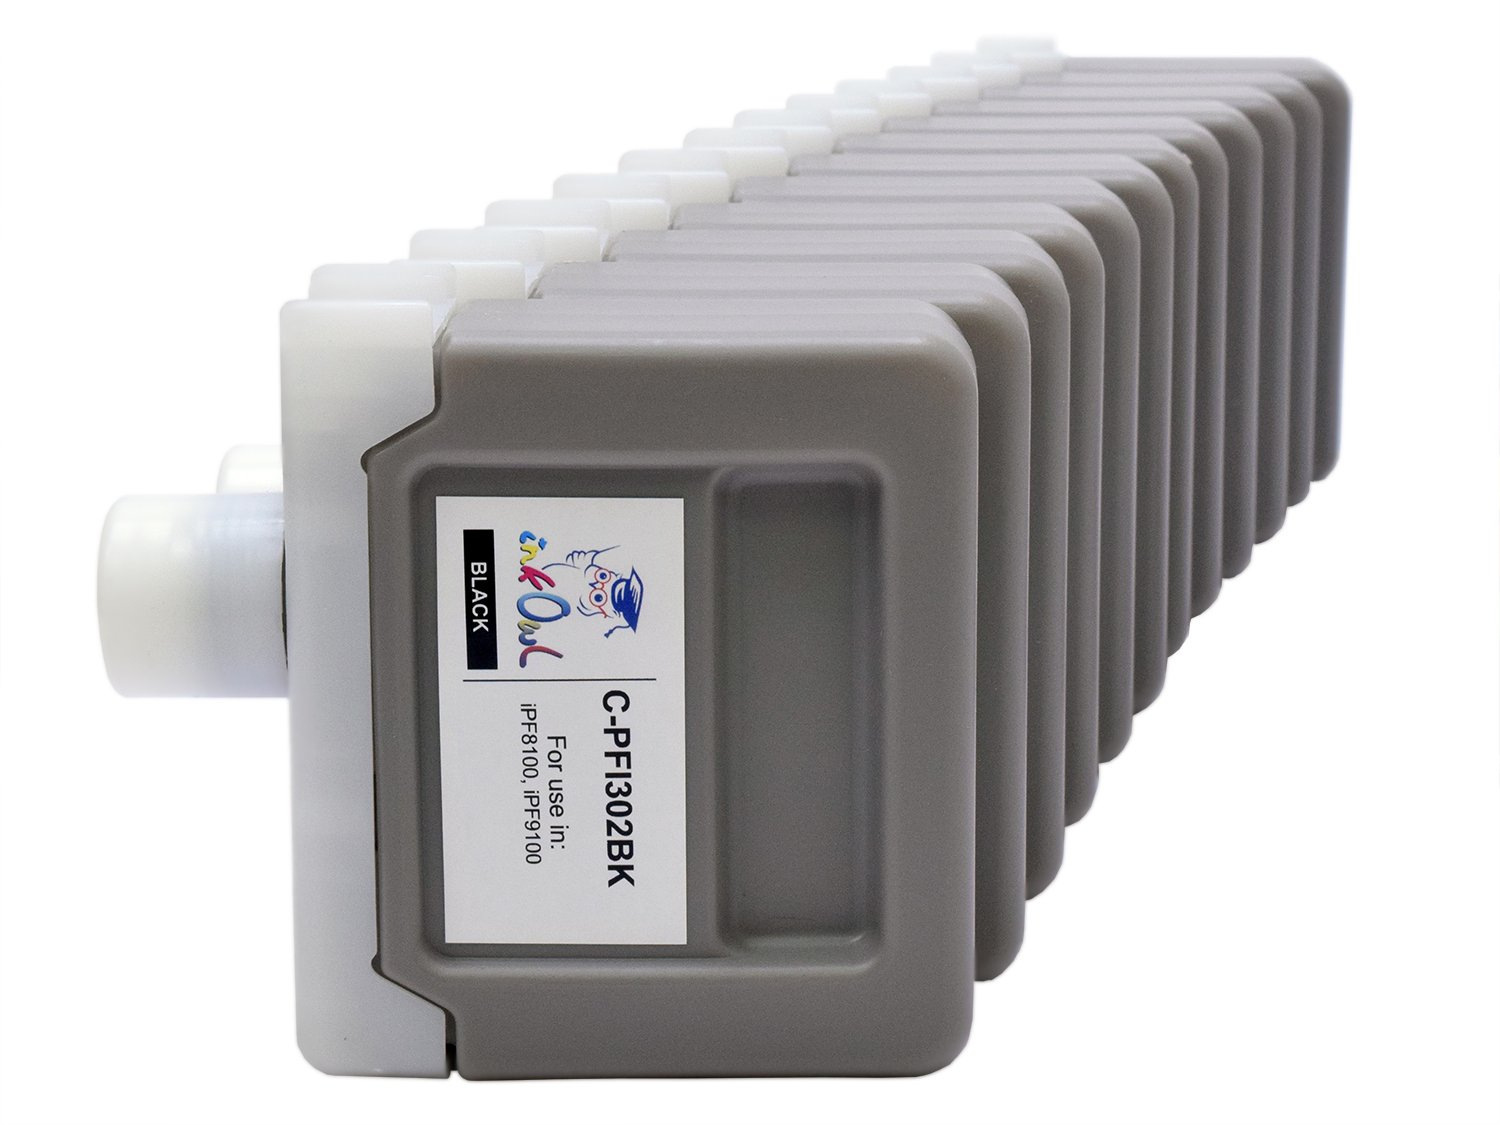 InkOwl - Compatible Ink Cartridge Replacement for CANON PFI-301/302 (330ml, 12-pack) for iPF8100, iPF9100 printers